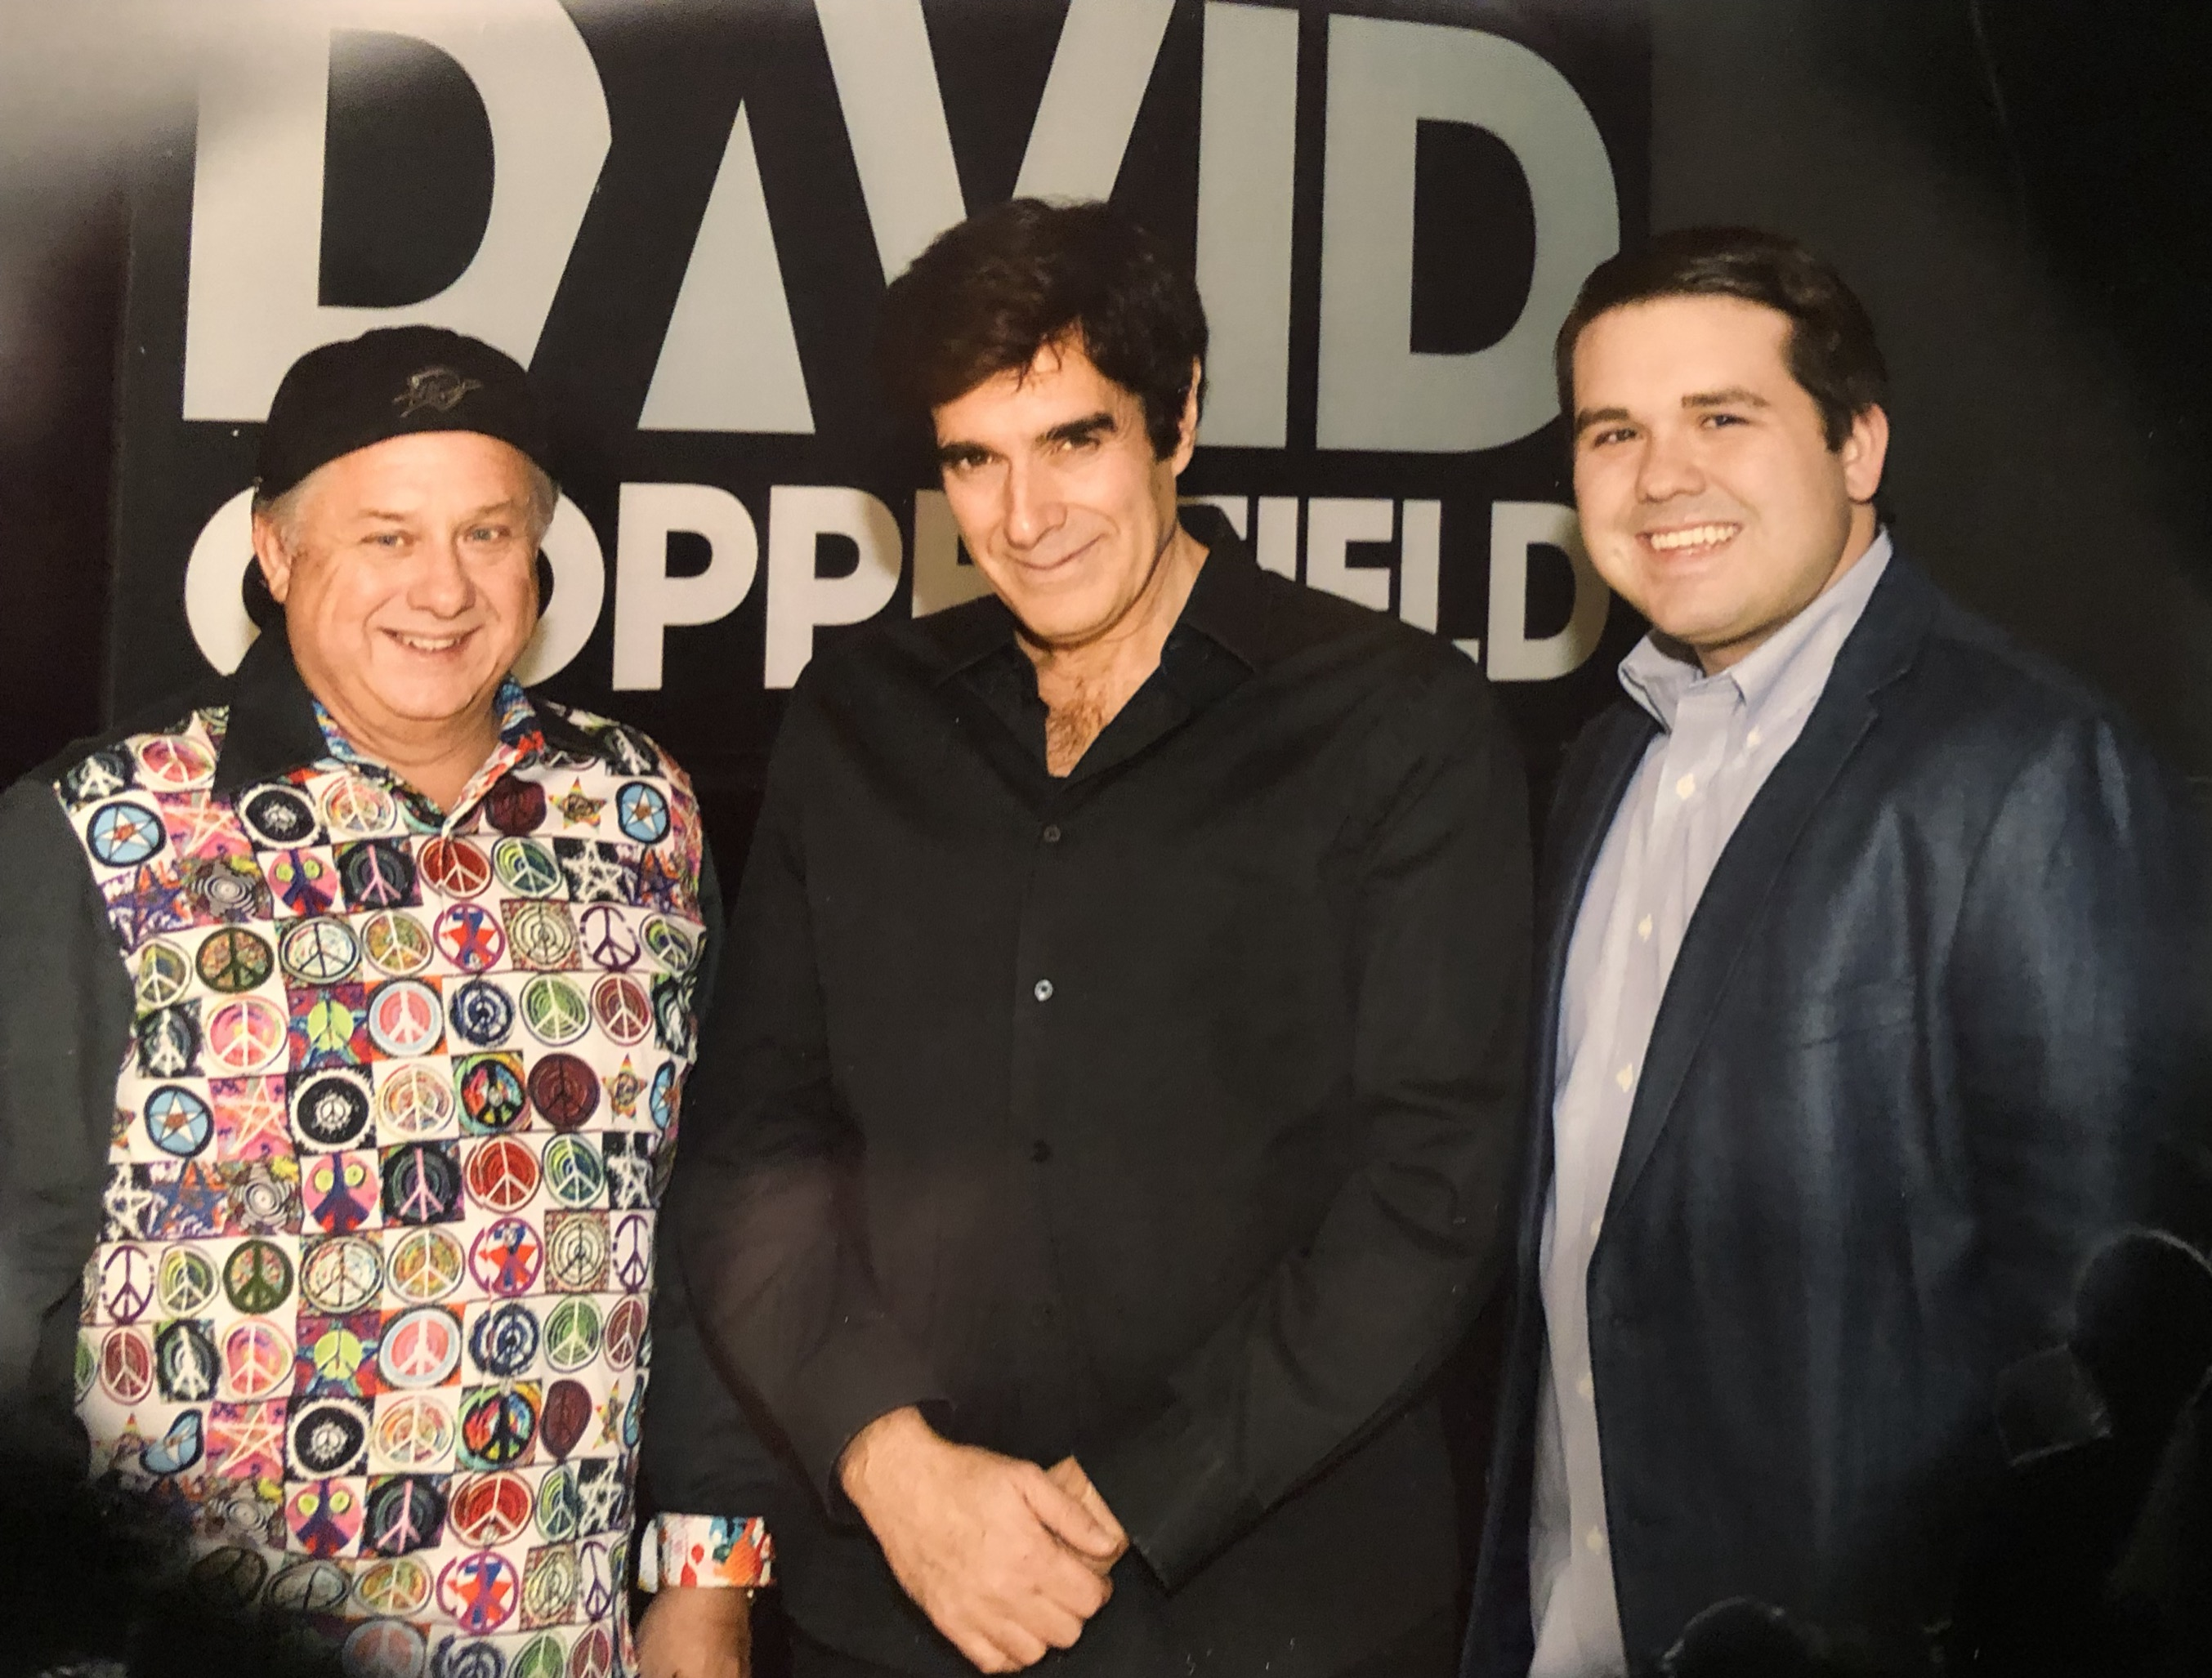 David Copperfield with JP